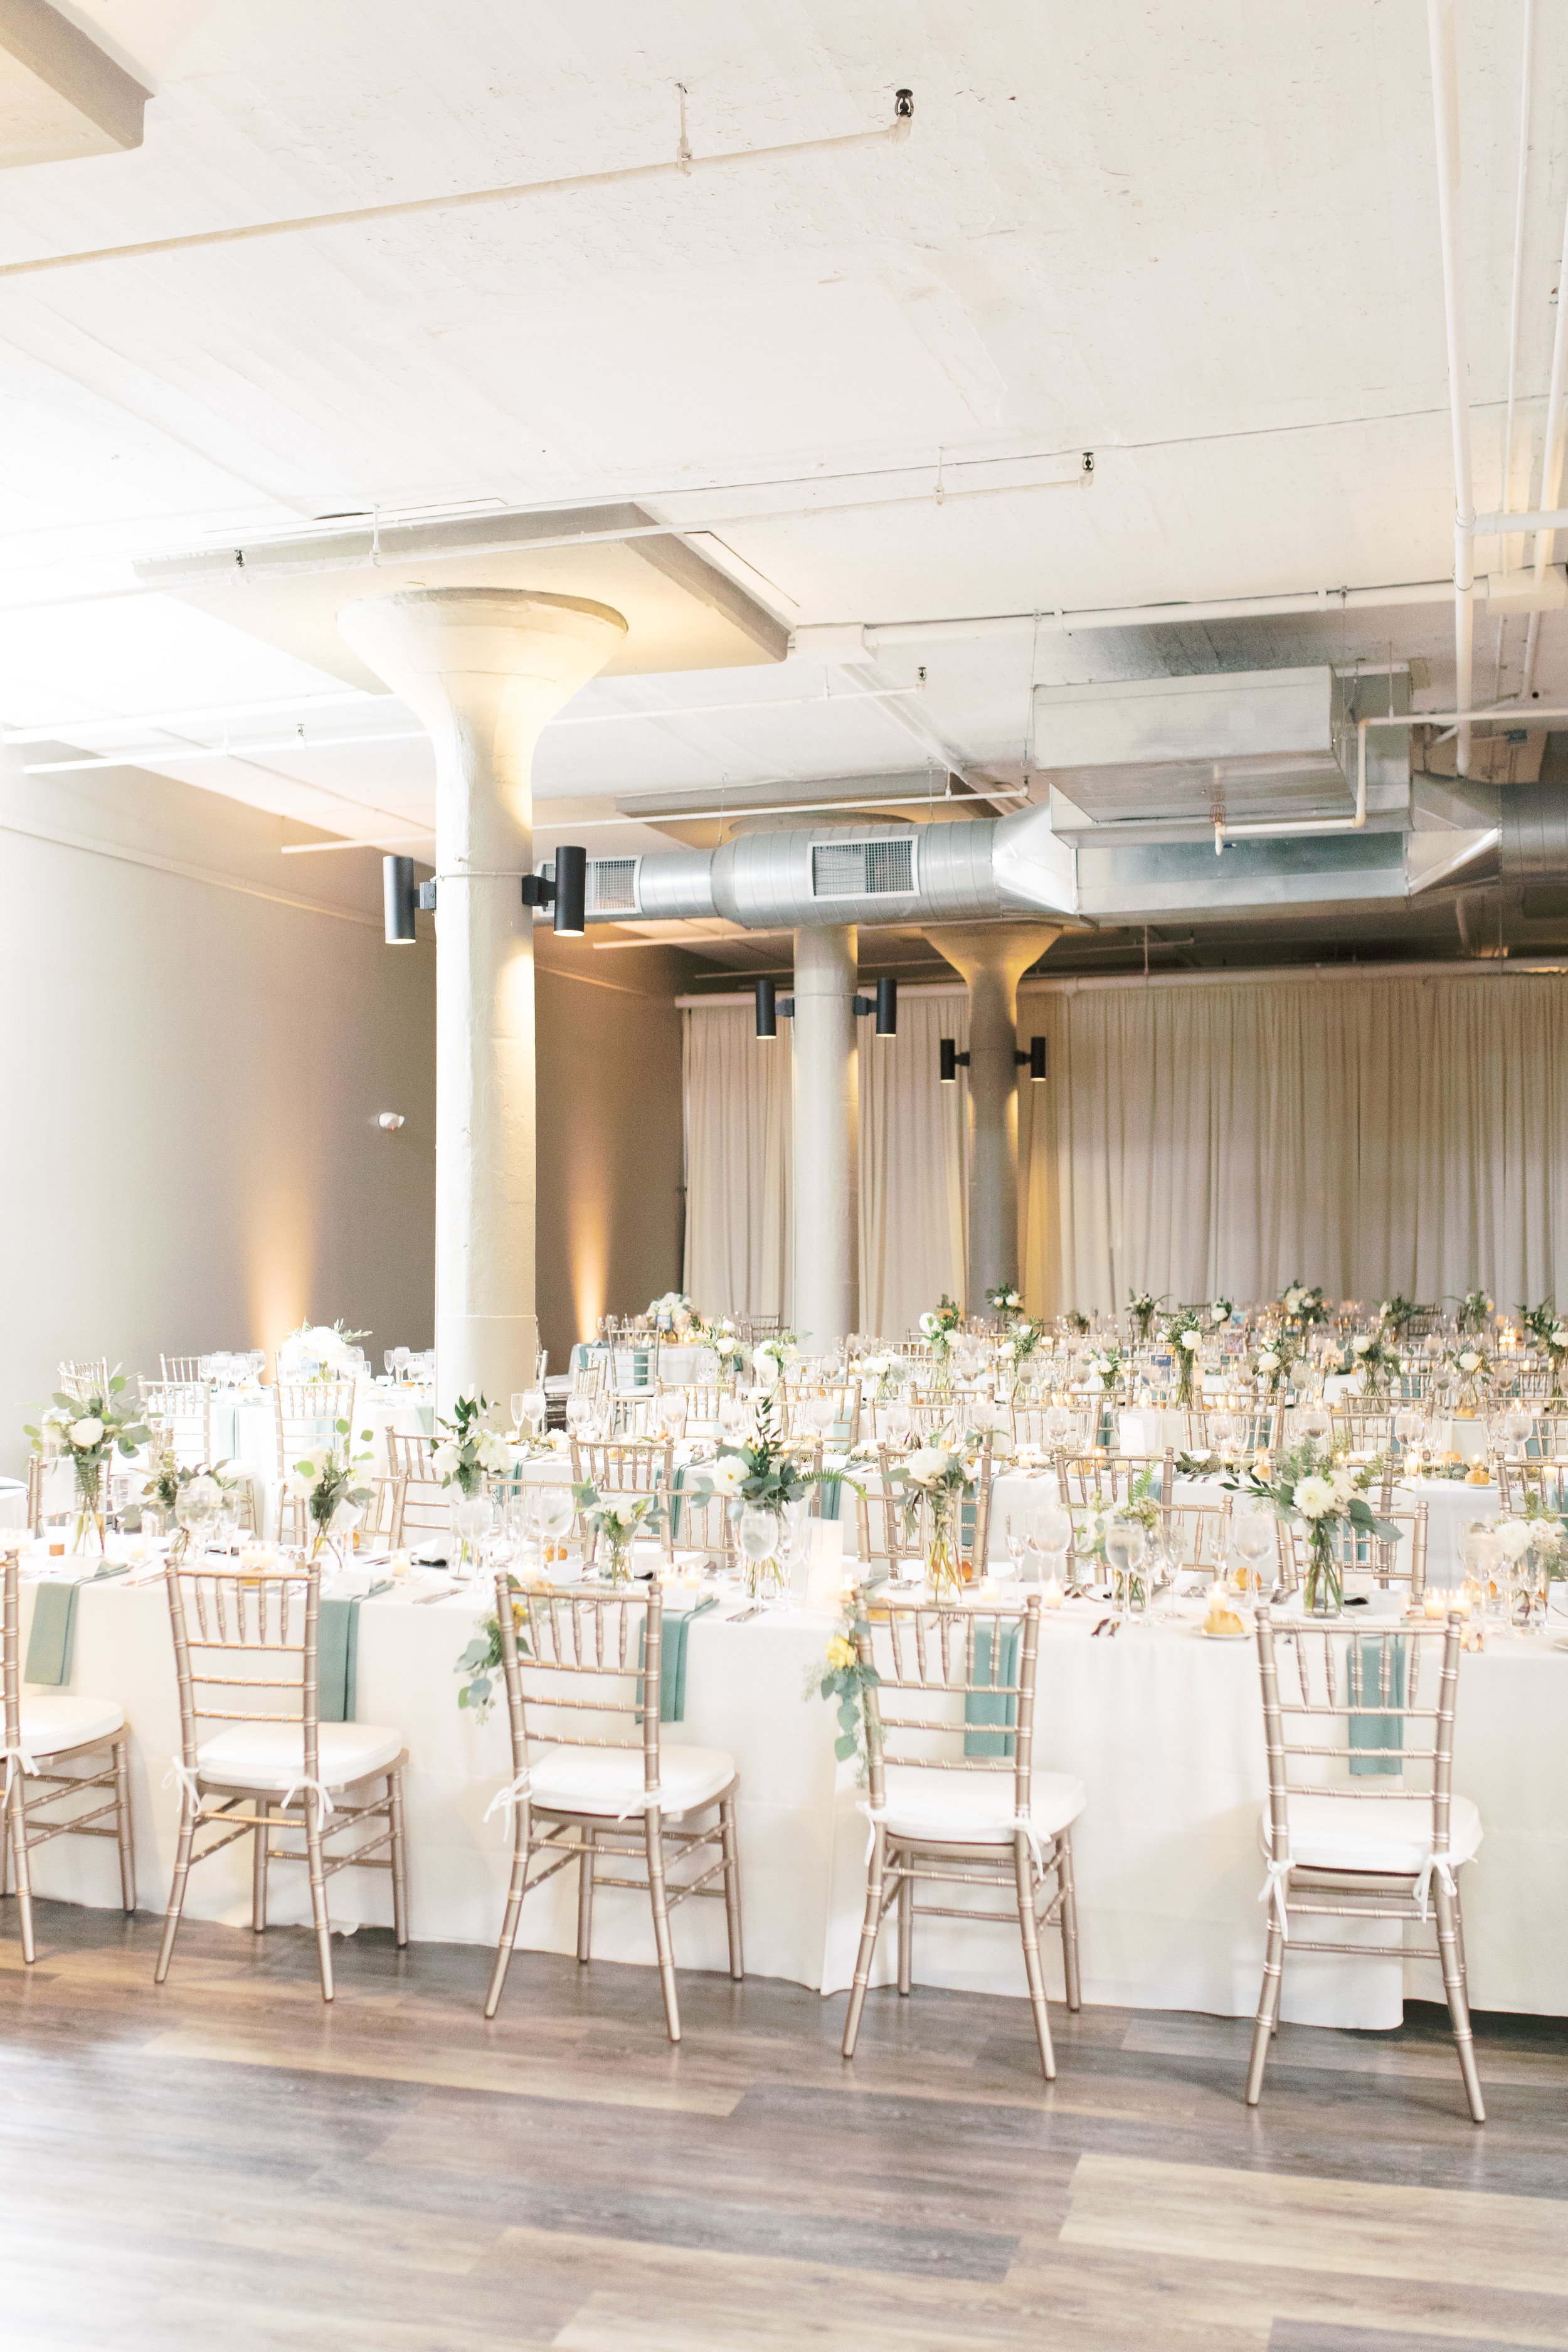 Reception setup at FAME, industrial and modern warehouse Philadelphia wedding venue by Haley Richter Photography